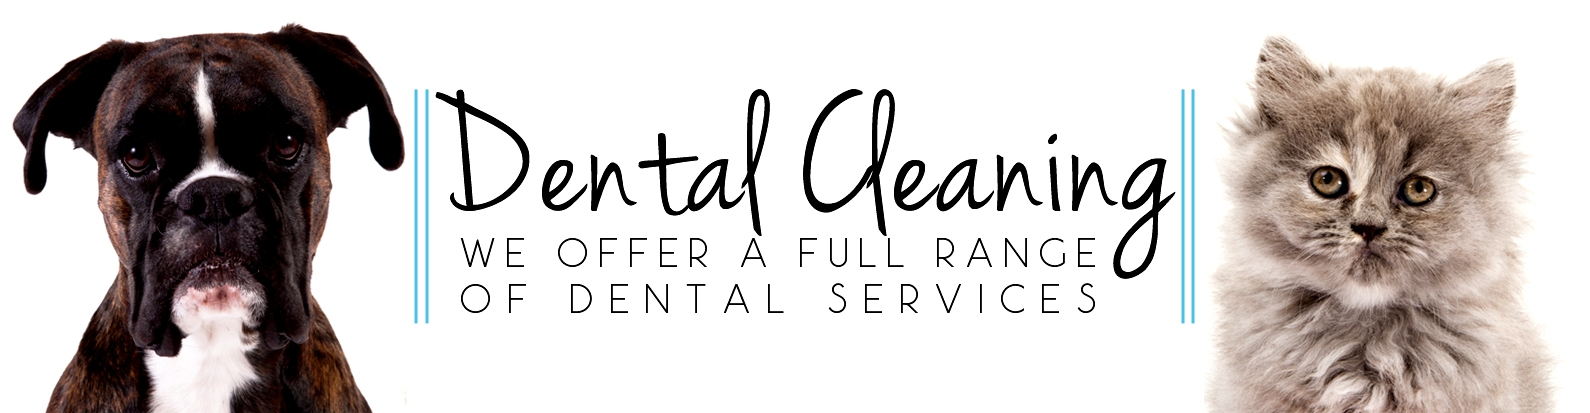 image of dental cleaning banner